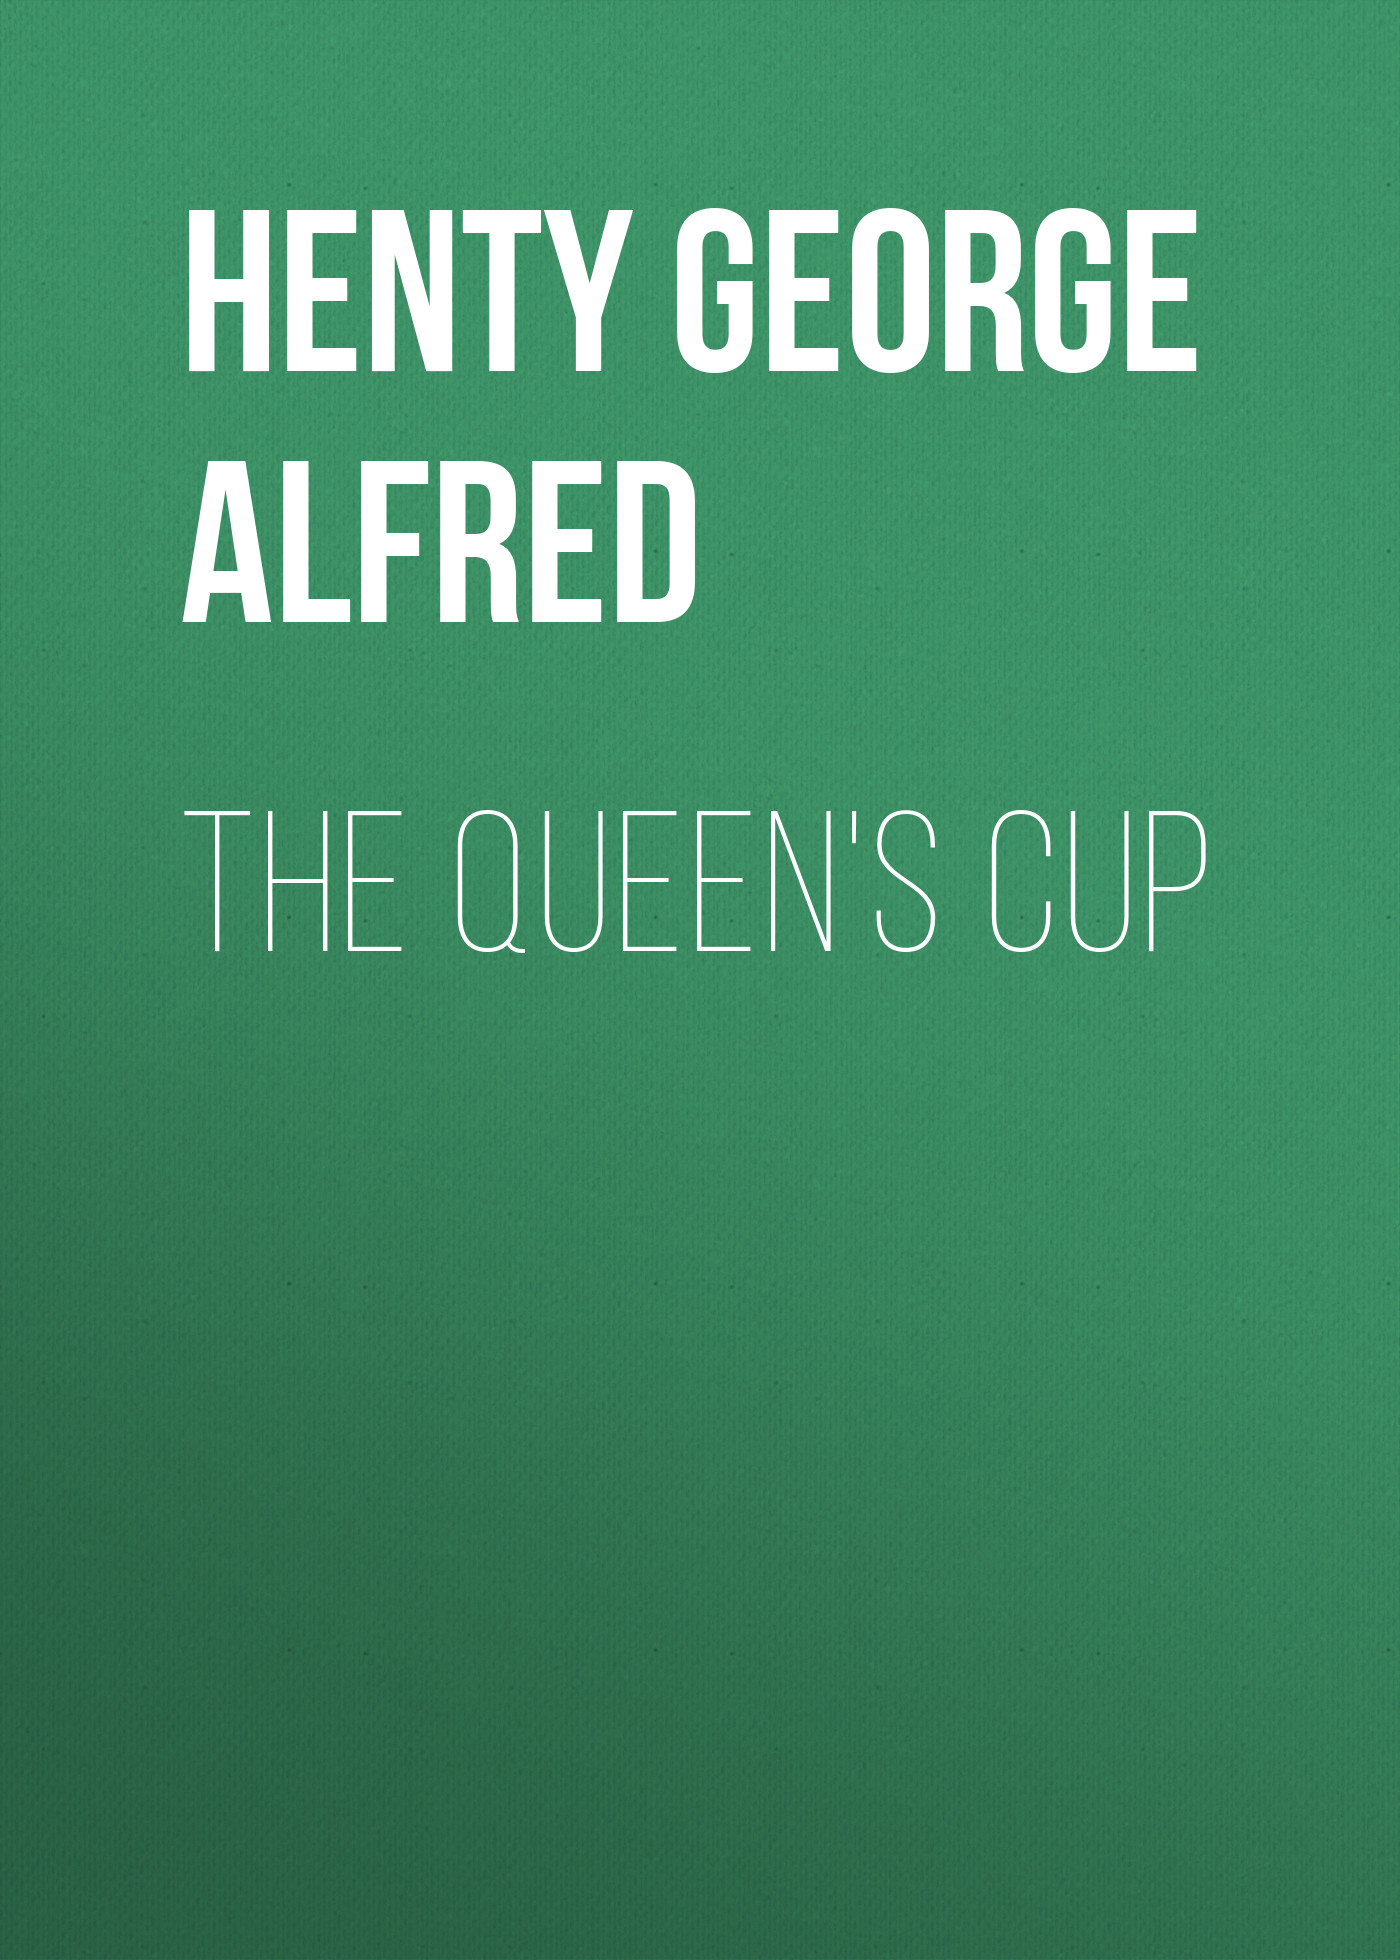 лучшая цена Henty George Alfred The Queen's Cup